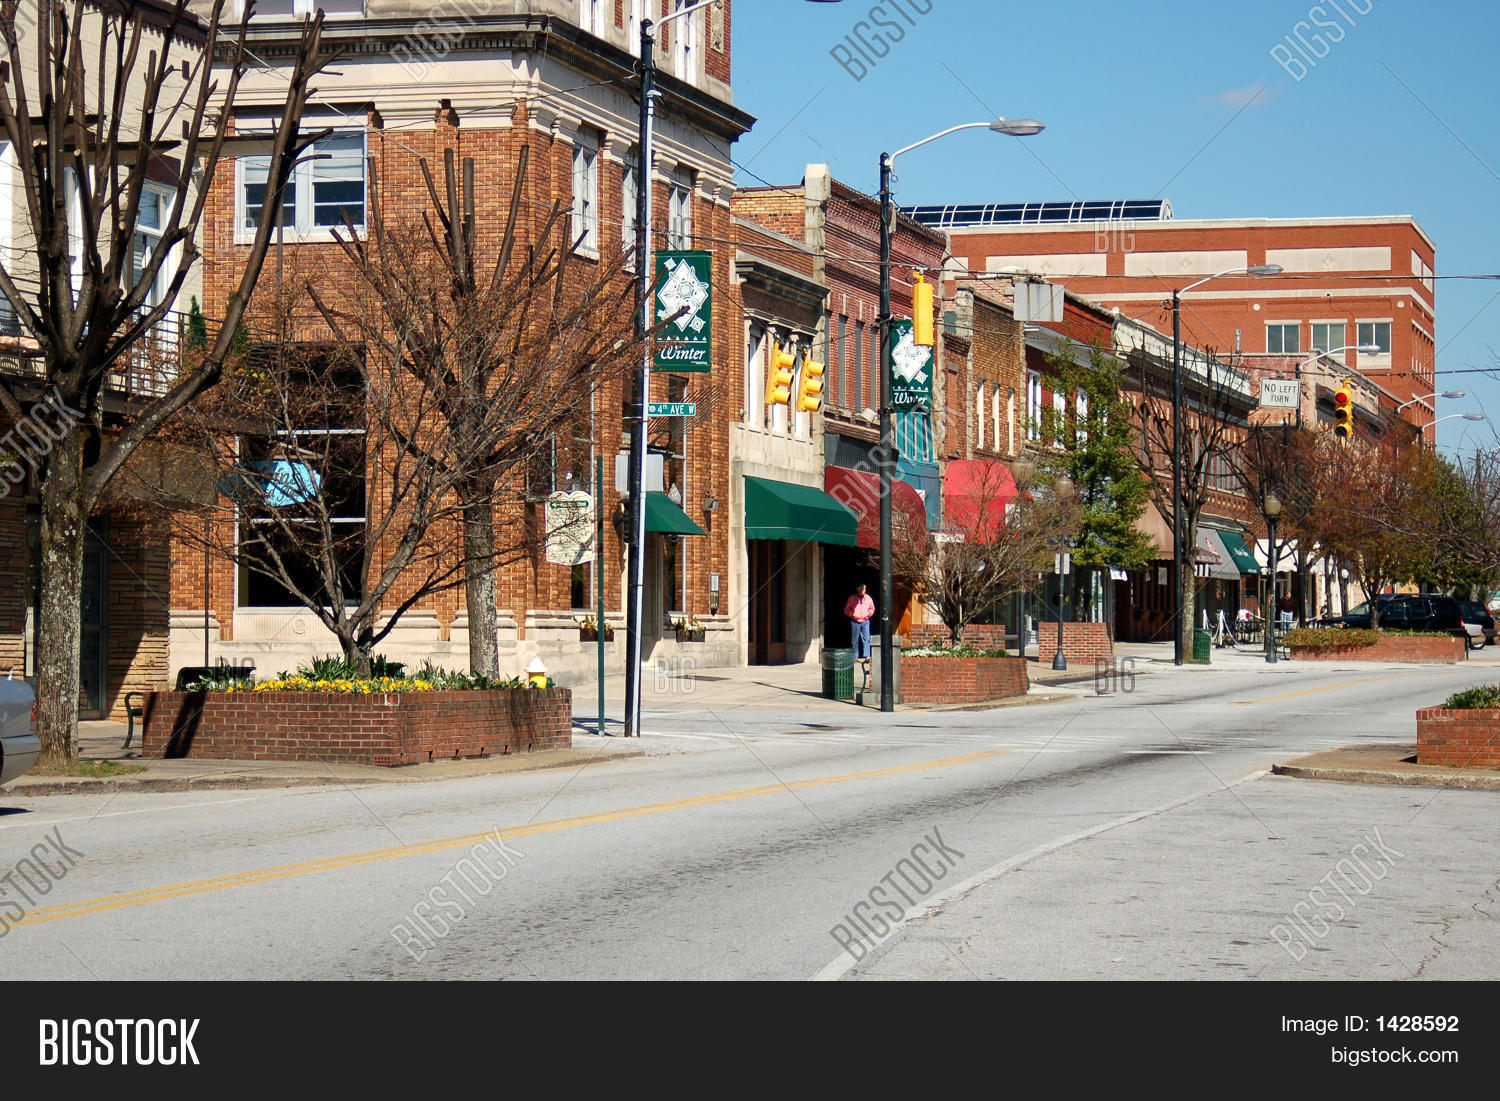 Rural Downtown Street Stock Photo & Stock Images | Bigstock